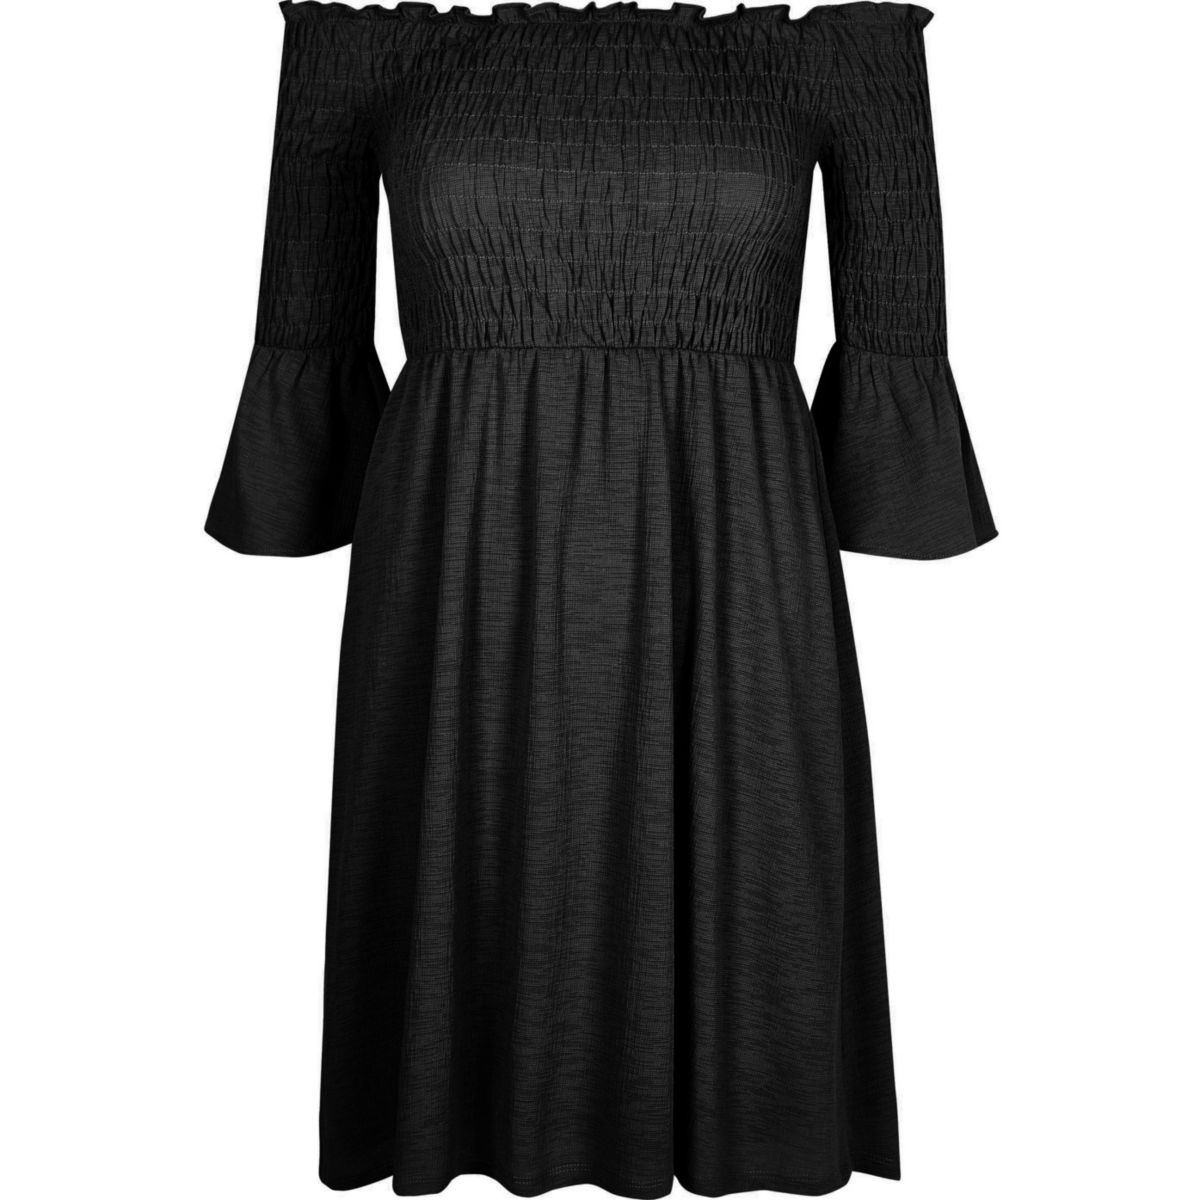 Black shirred bardot dress